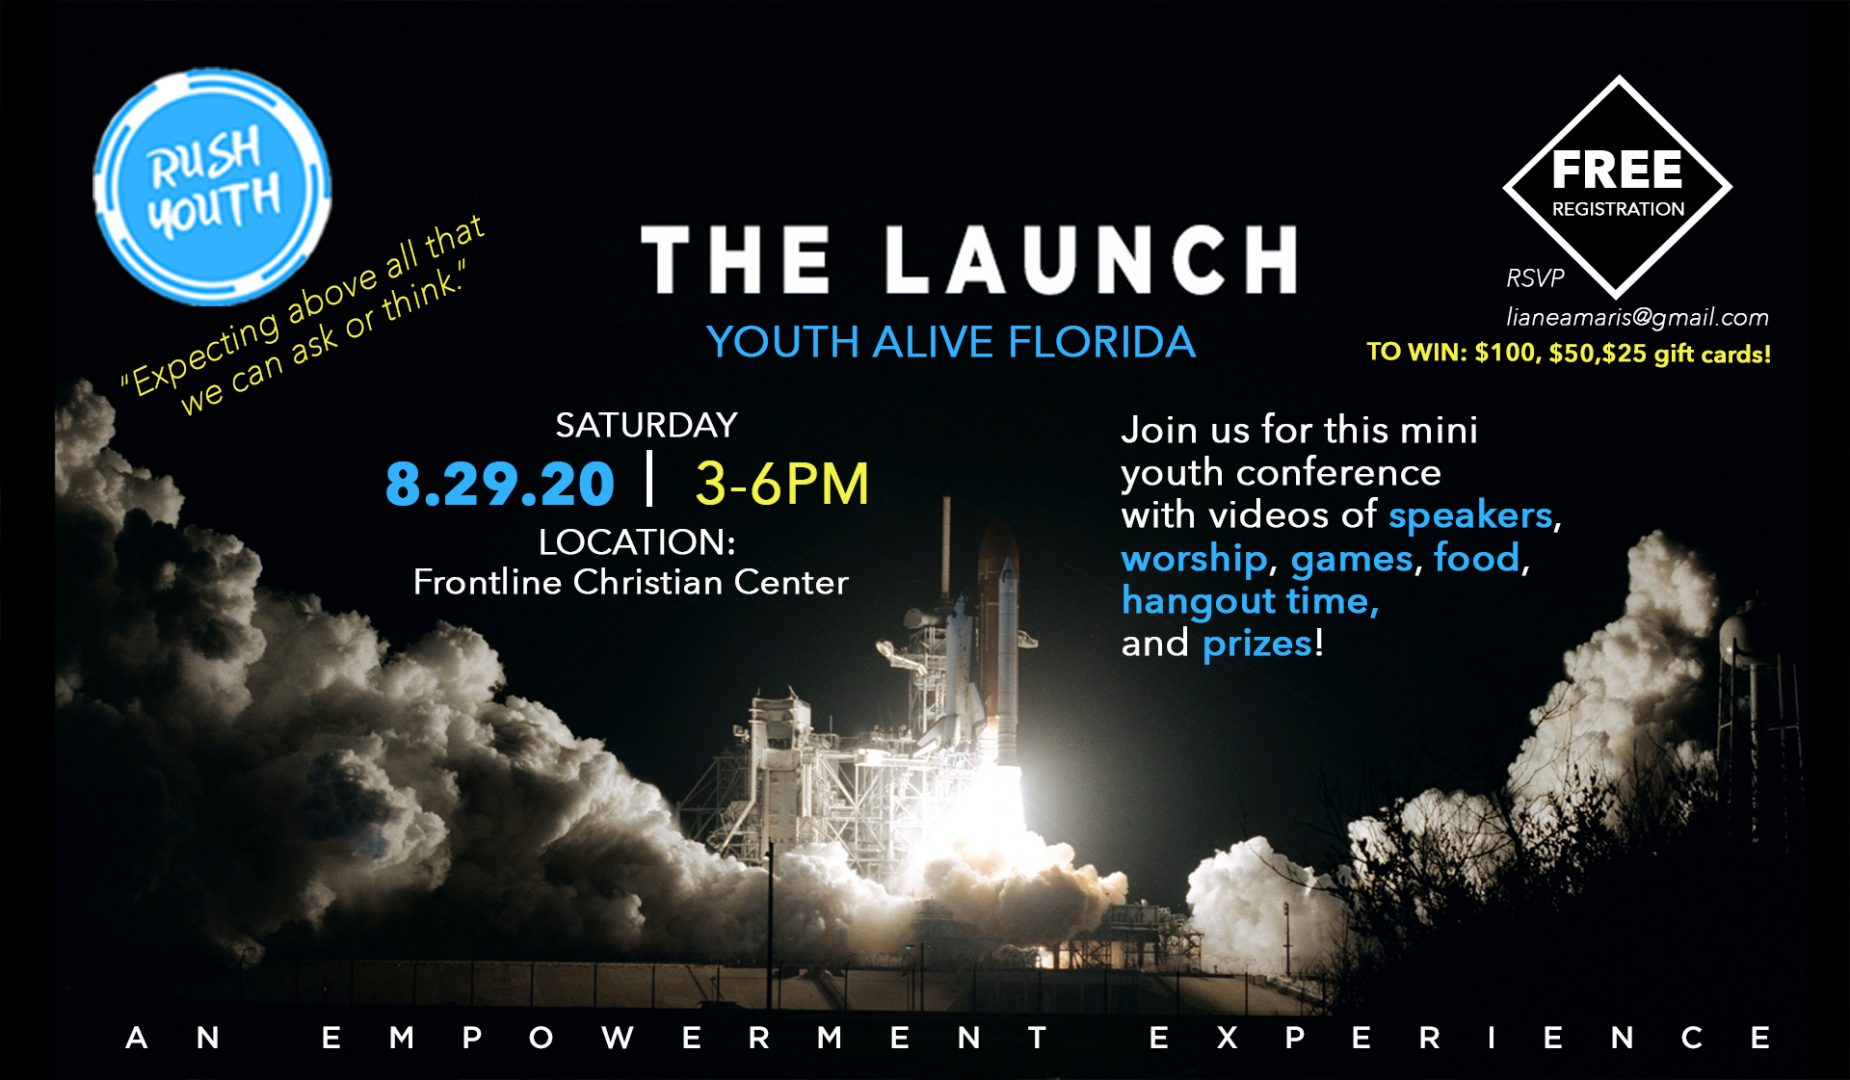 The Launch - Youth Alive Florida